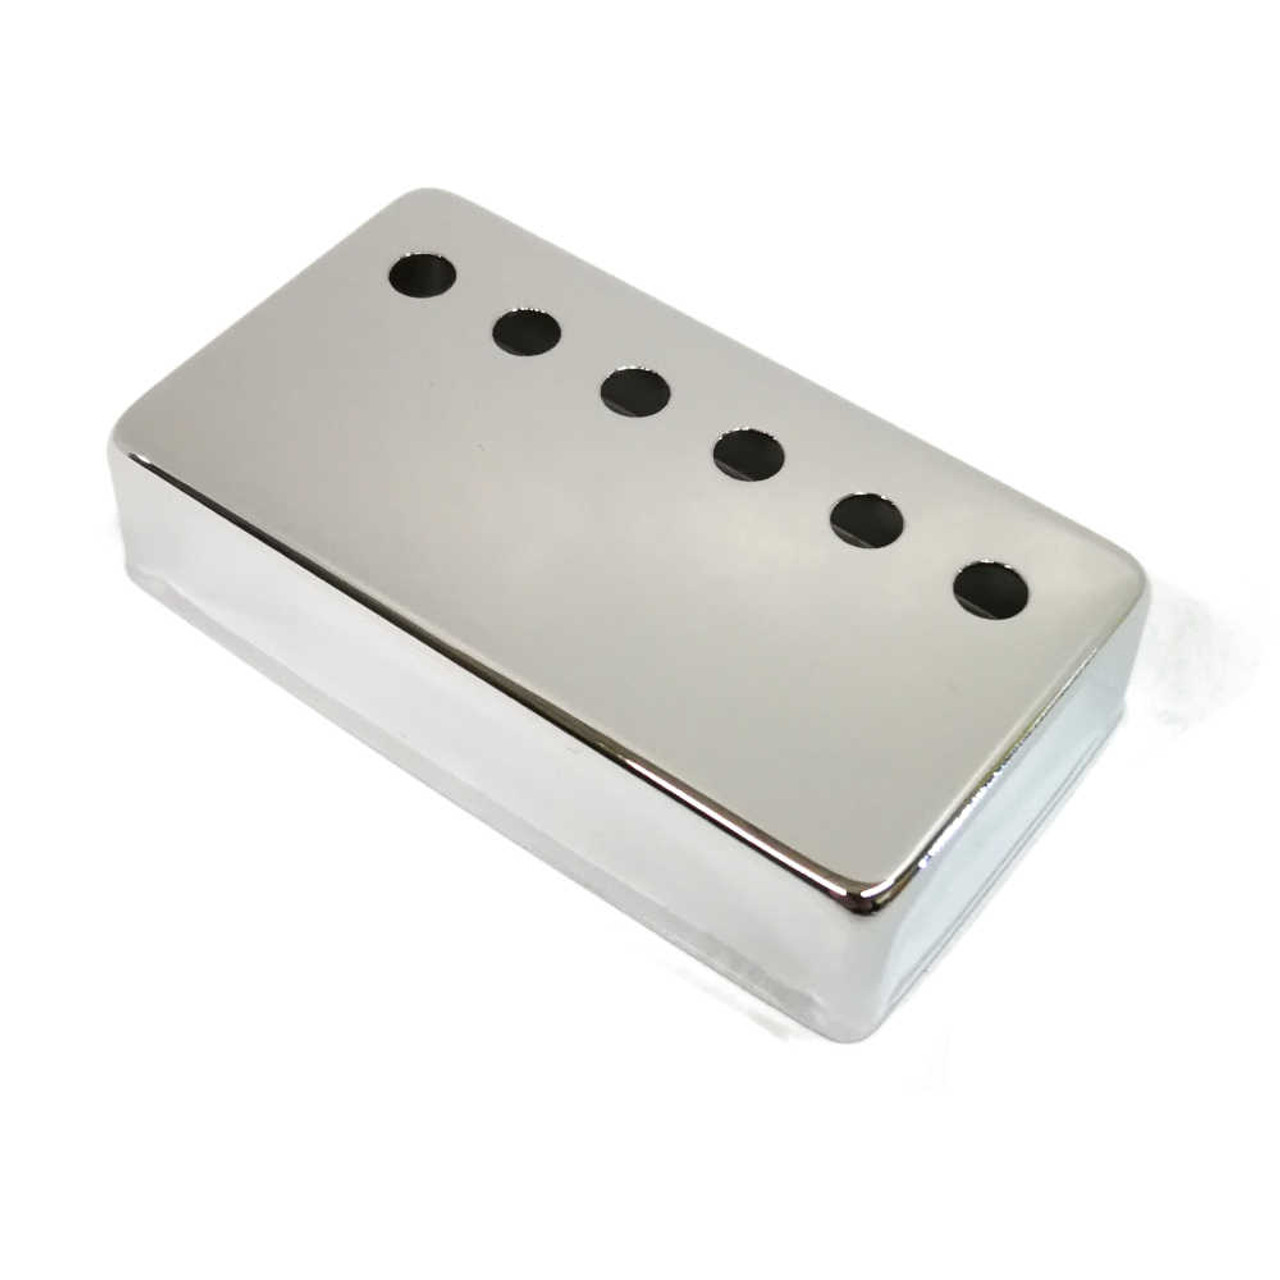 Humbucking Pickup Cover - 50mm Chrome (plated nickel/silver)